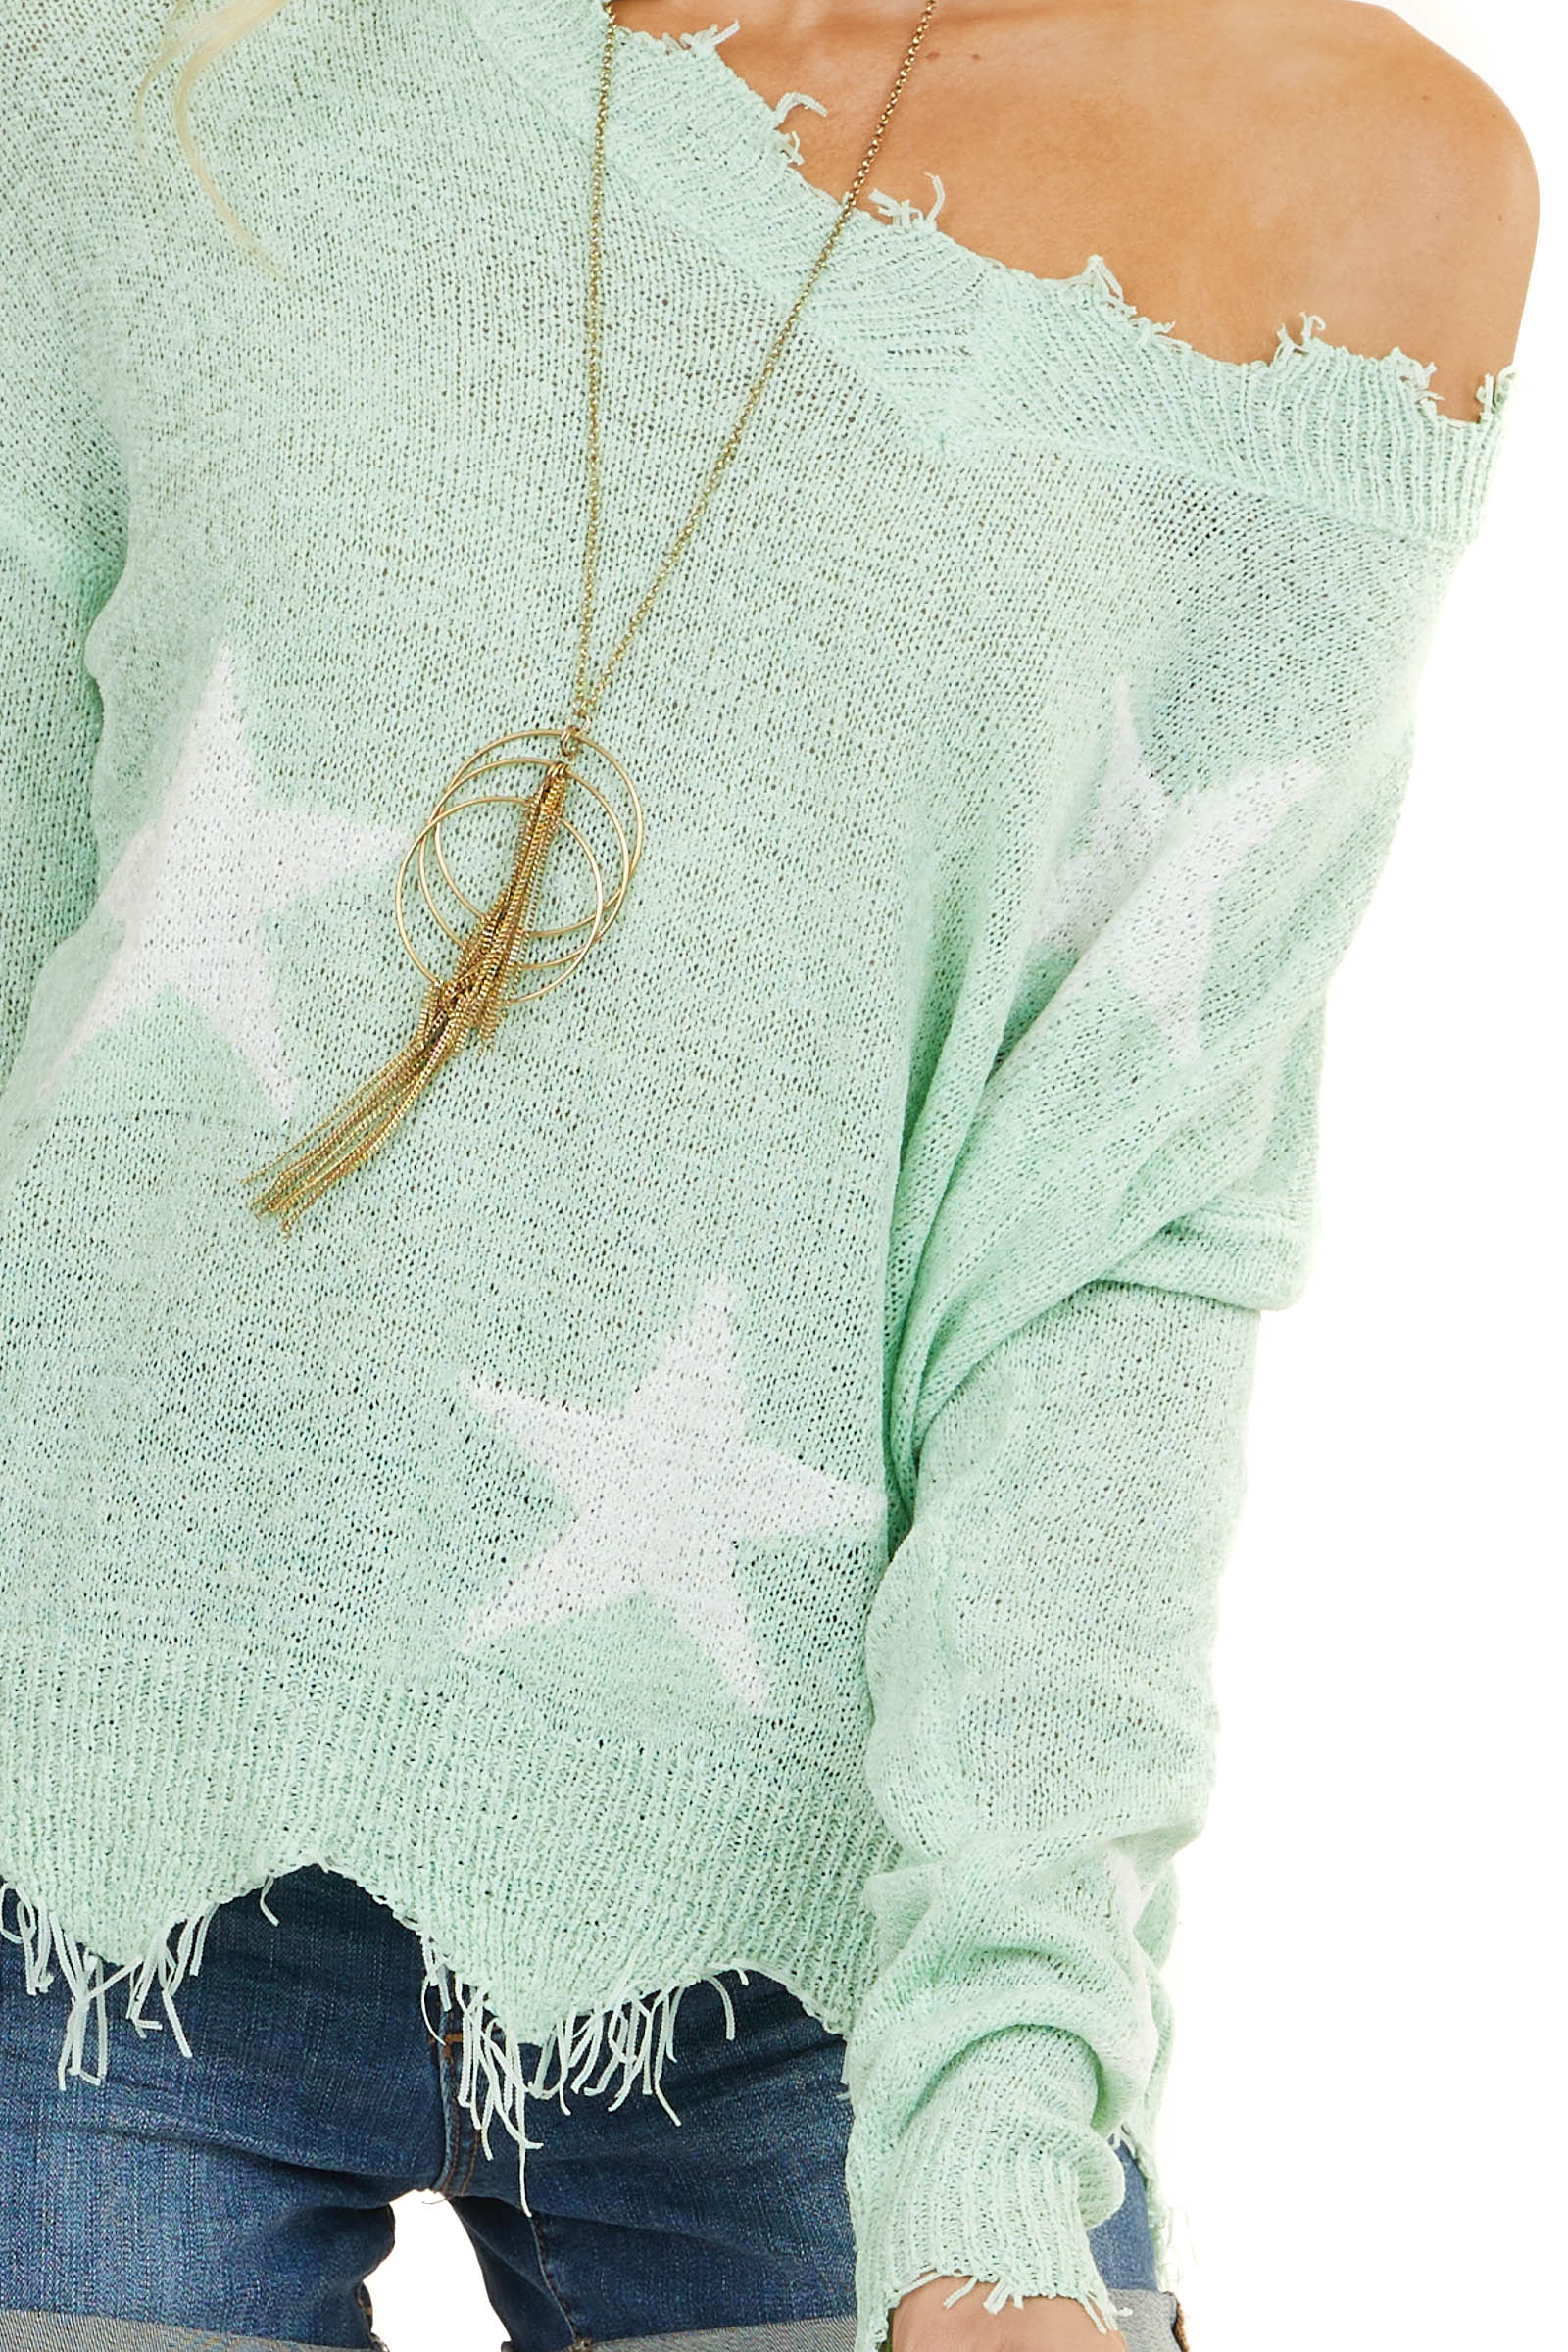 Mint V Neck Loose Knit Sweater with Frayed Edge and Stars